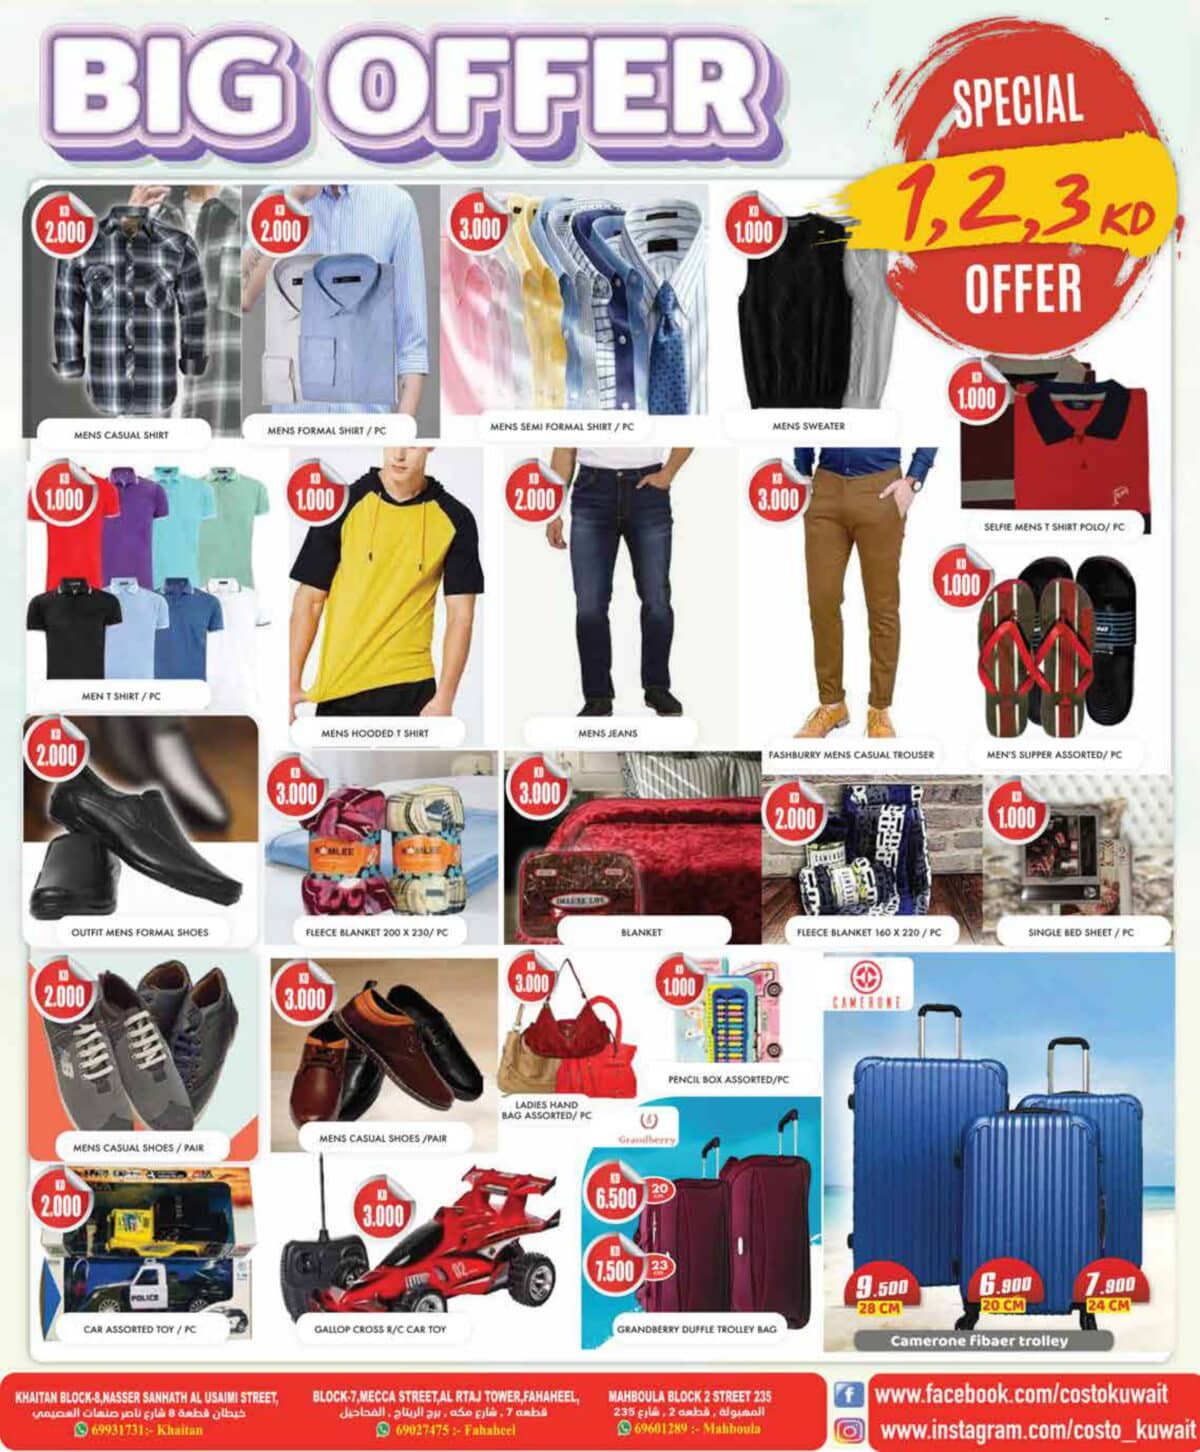 Grand Hyper Promotions, iiQ8, Grand Kuwait Offers, Weekly Deals 7